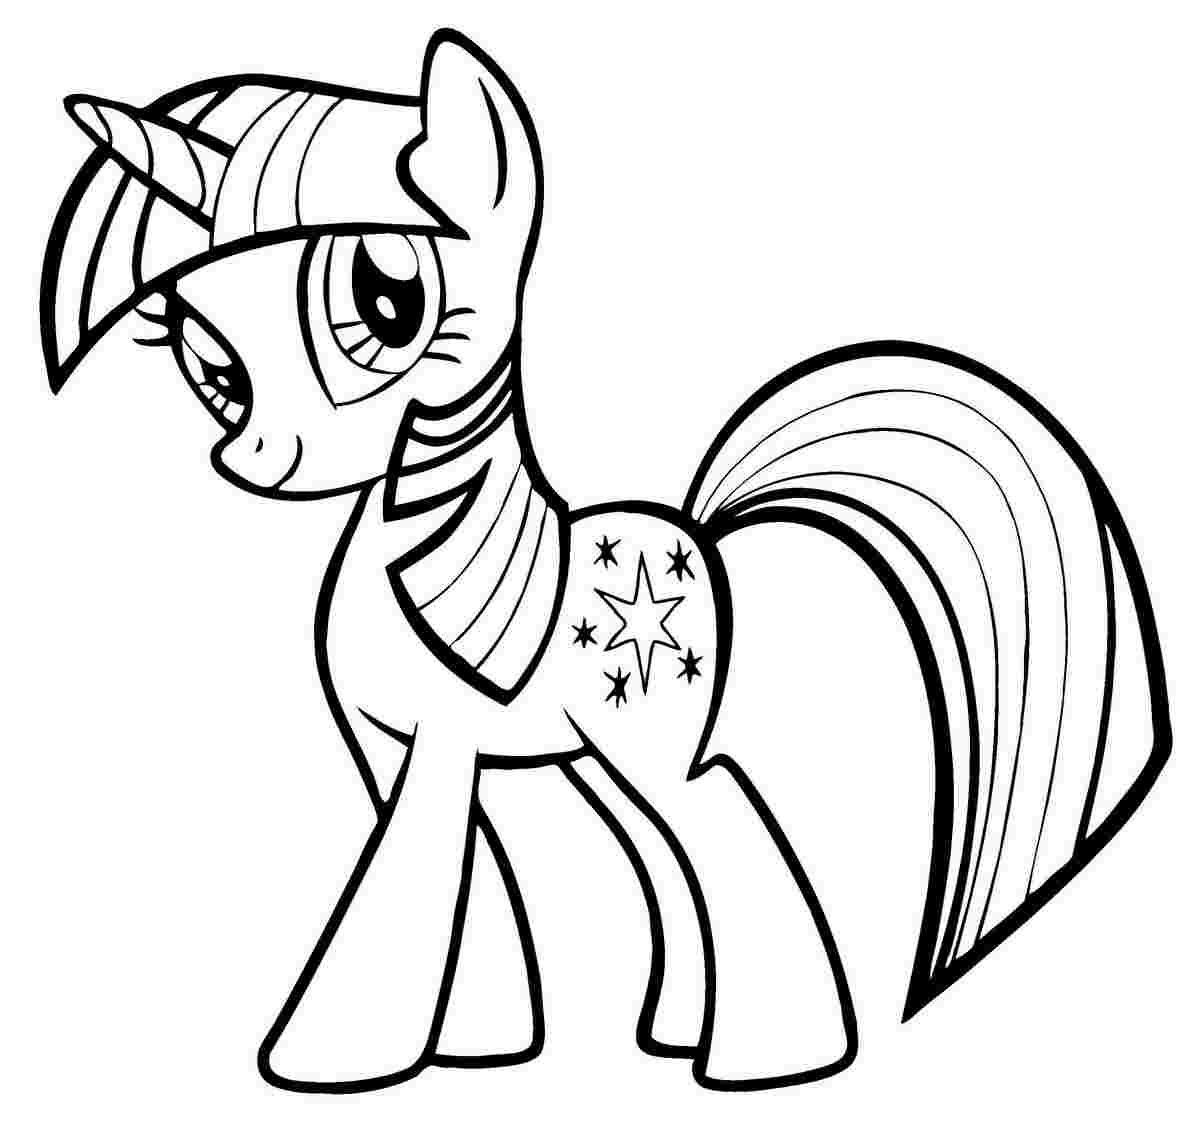 Coloring Pages For Kids My Little Pony In 2020 My Little Pony Coloring My Little Pony Drawing My Little Pony Twilight